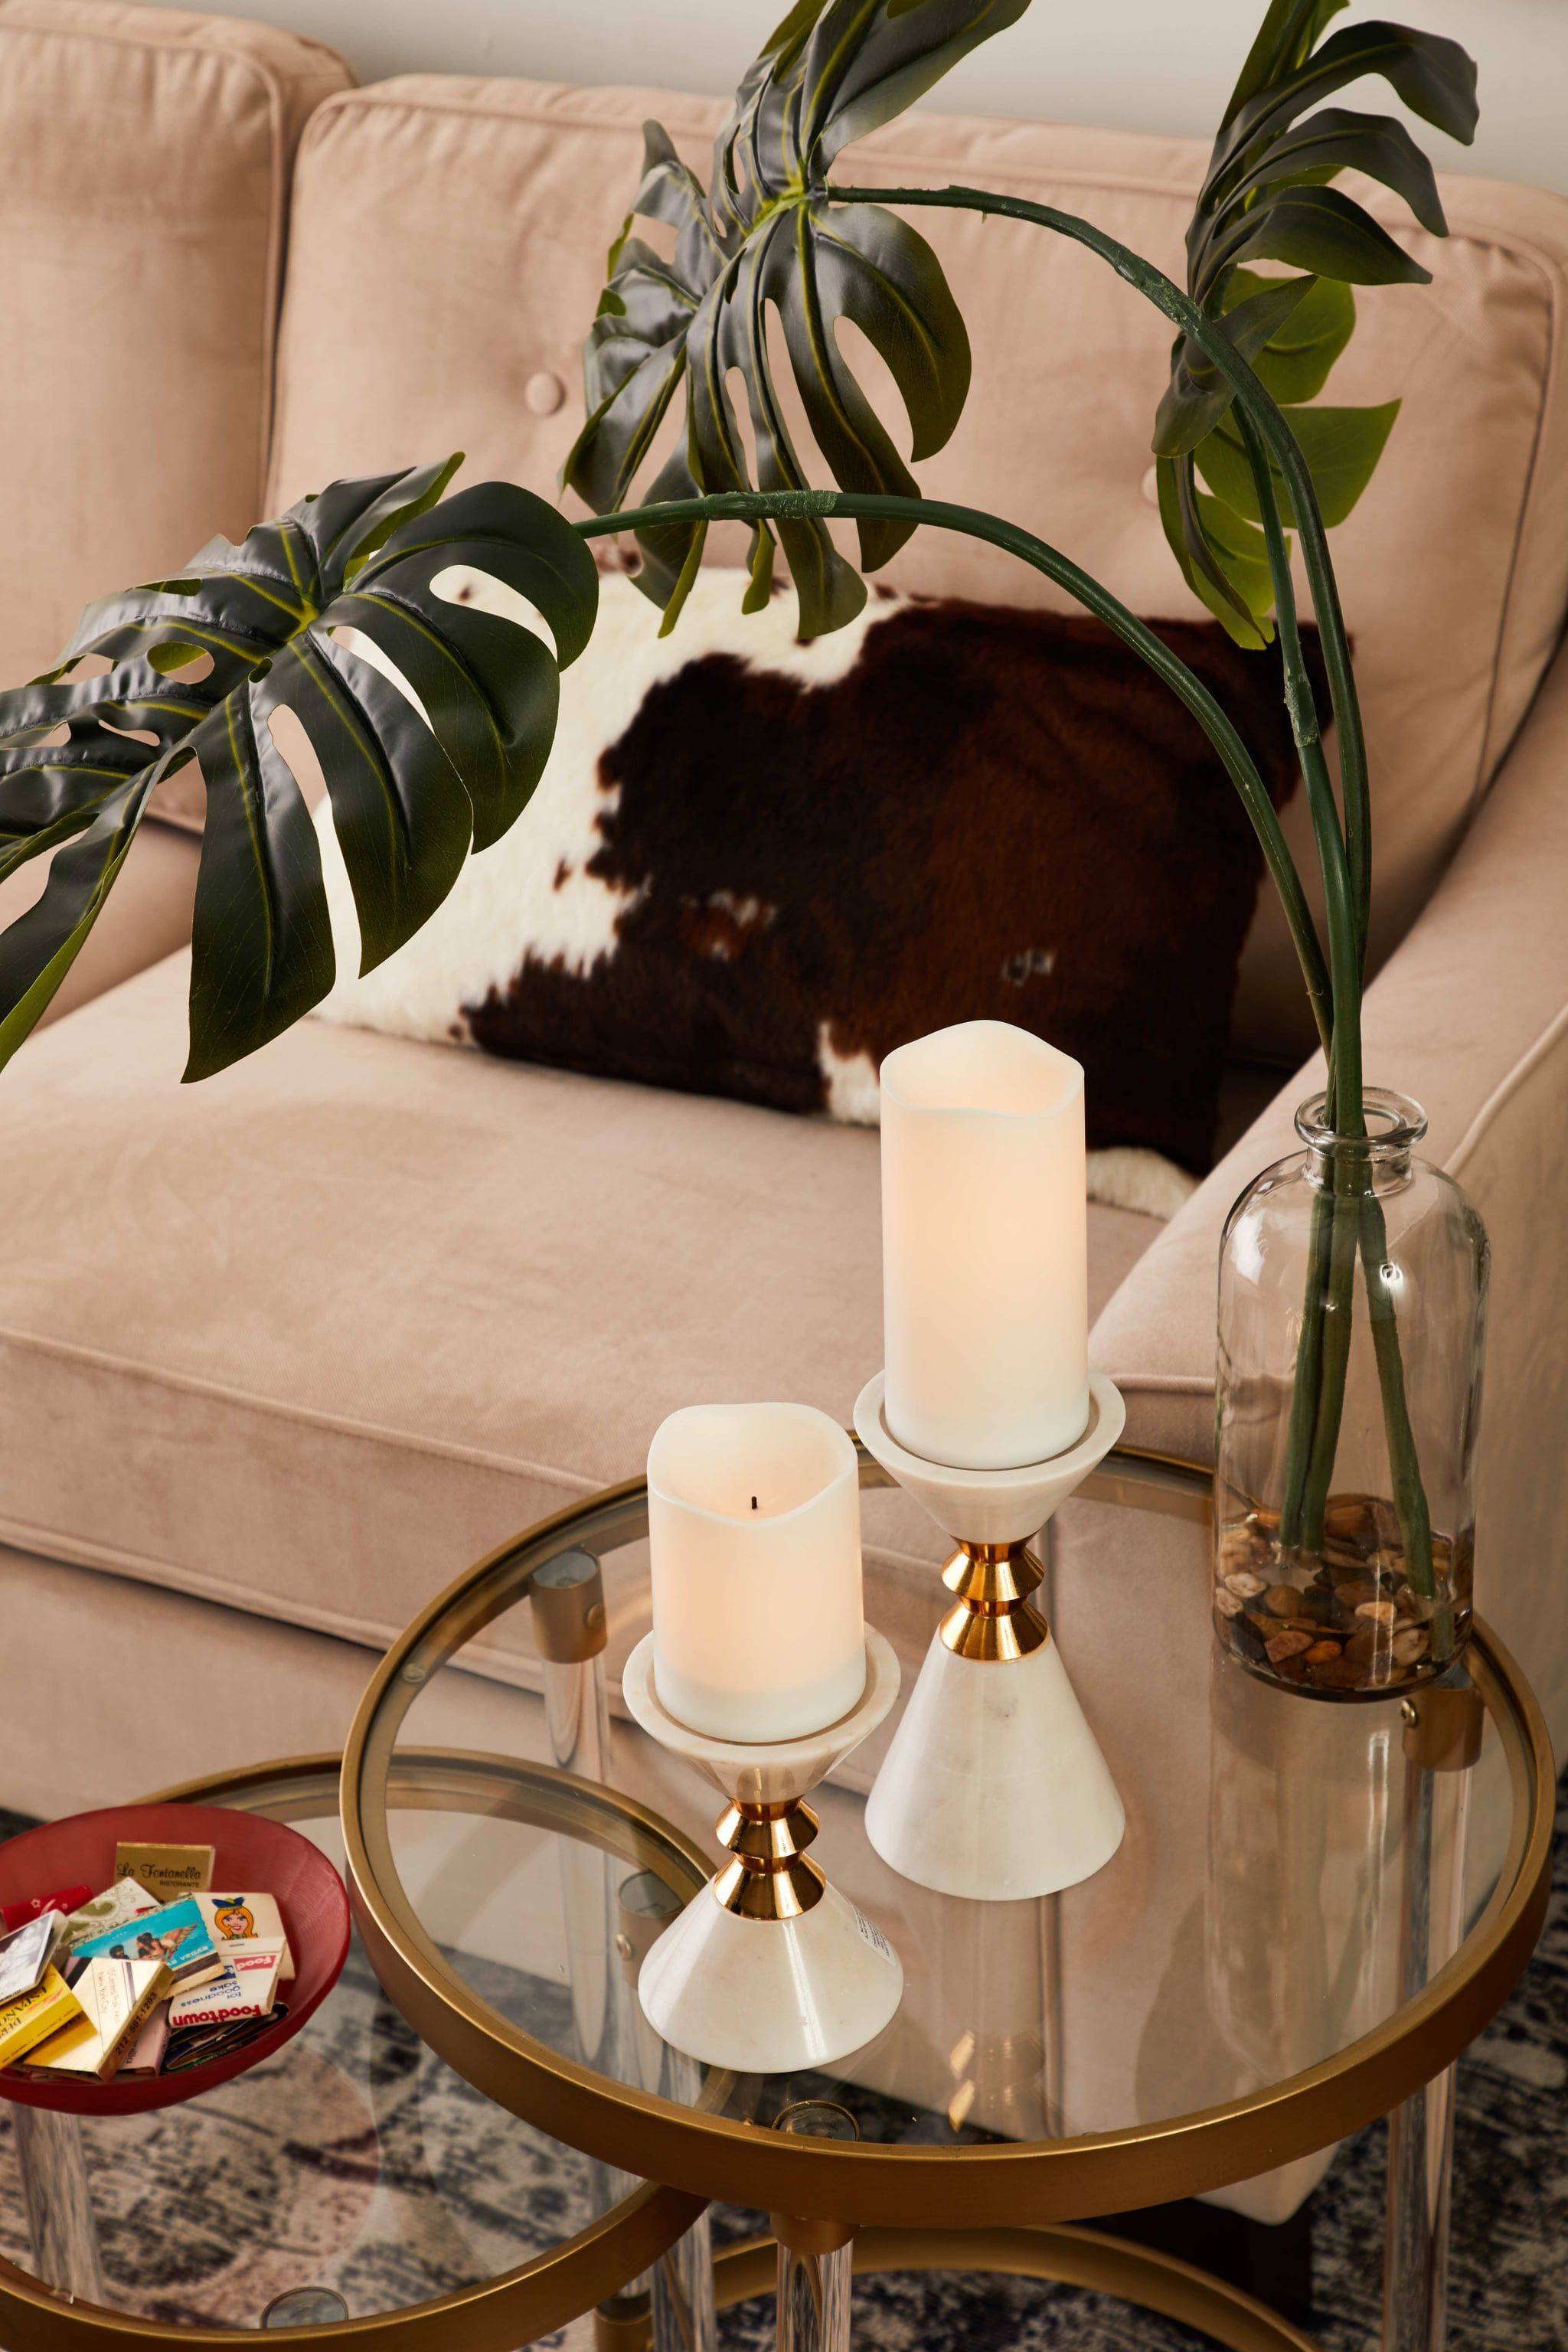 Pier 1 Fitness how 3 editors infuse their home decor with their individual styles